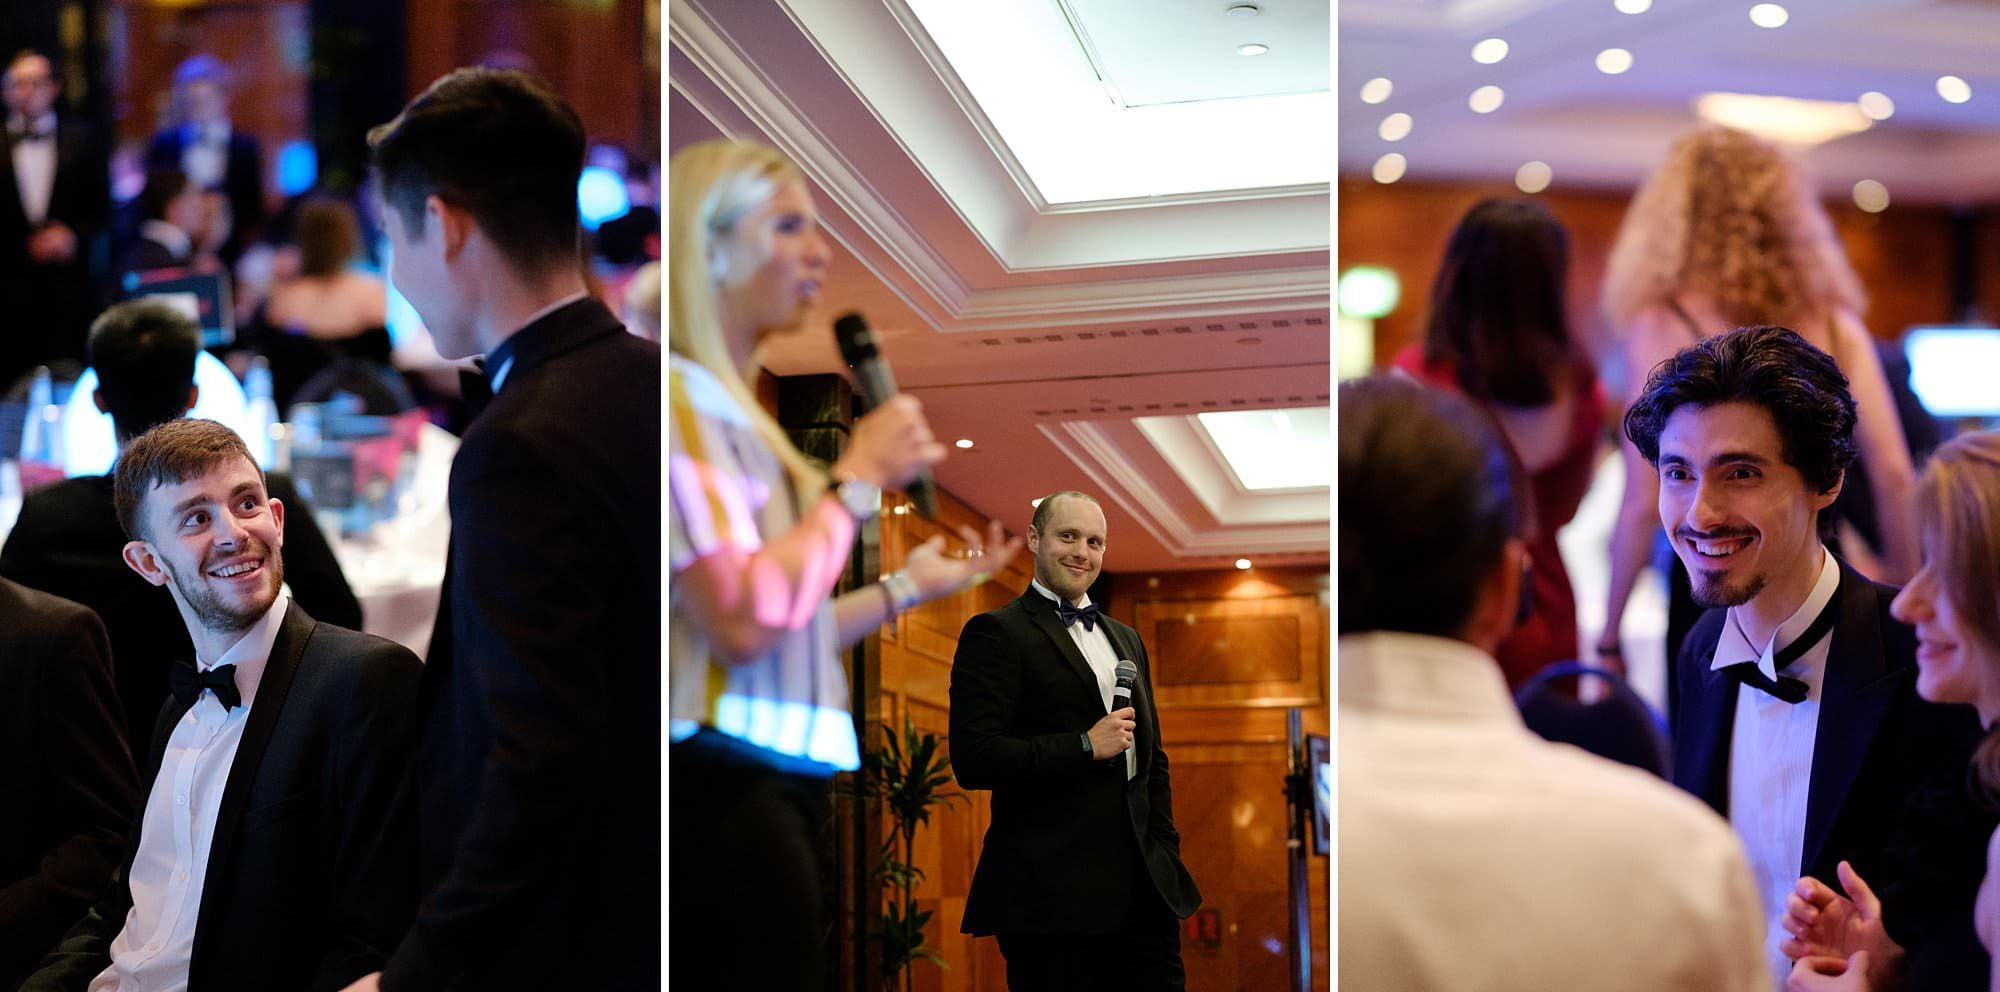 london event photographer ICL copthorne tara 010 - Corporate: Imperial College Sports Awards